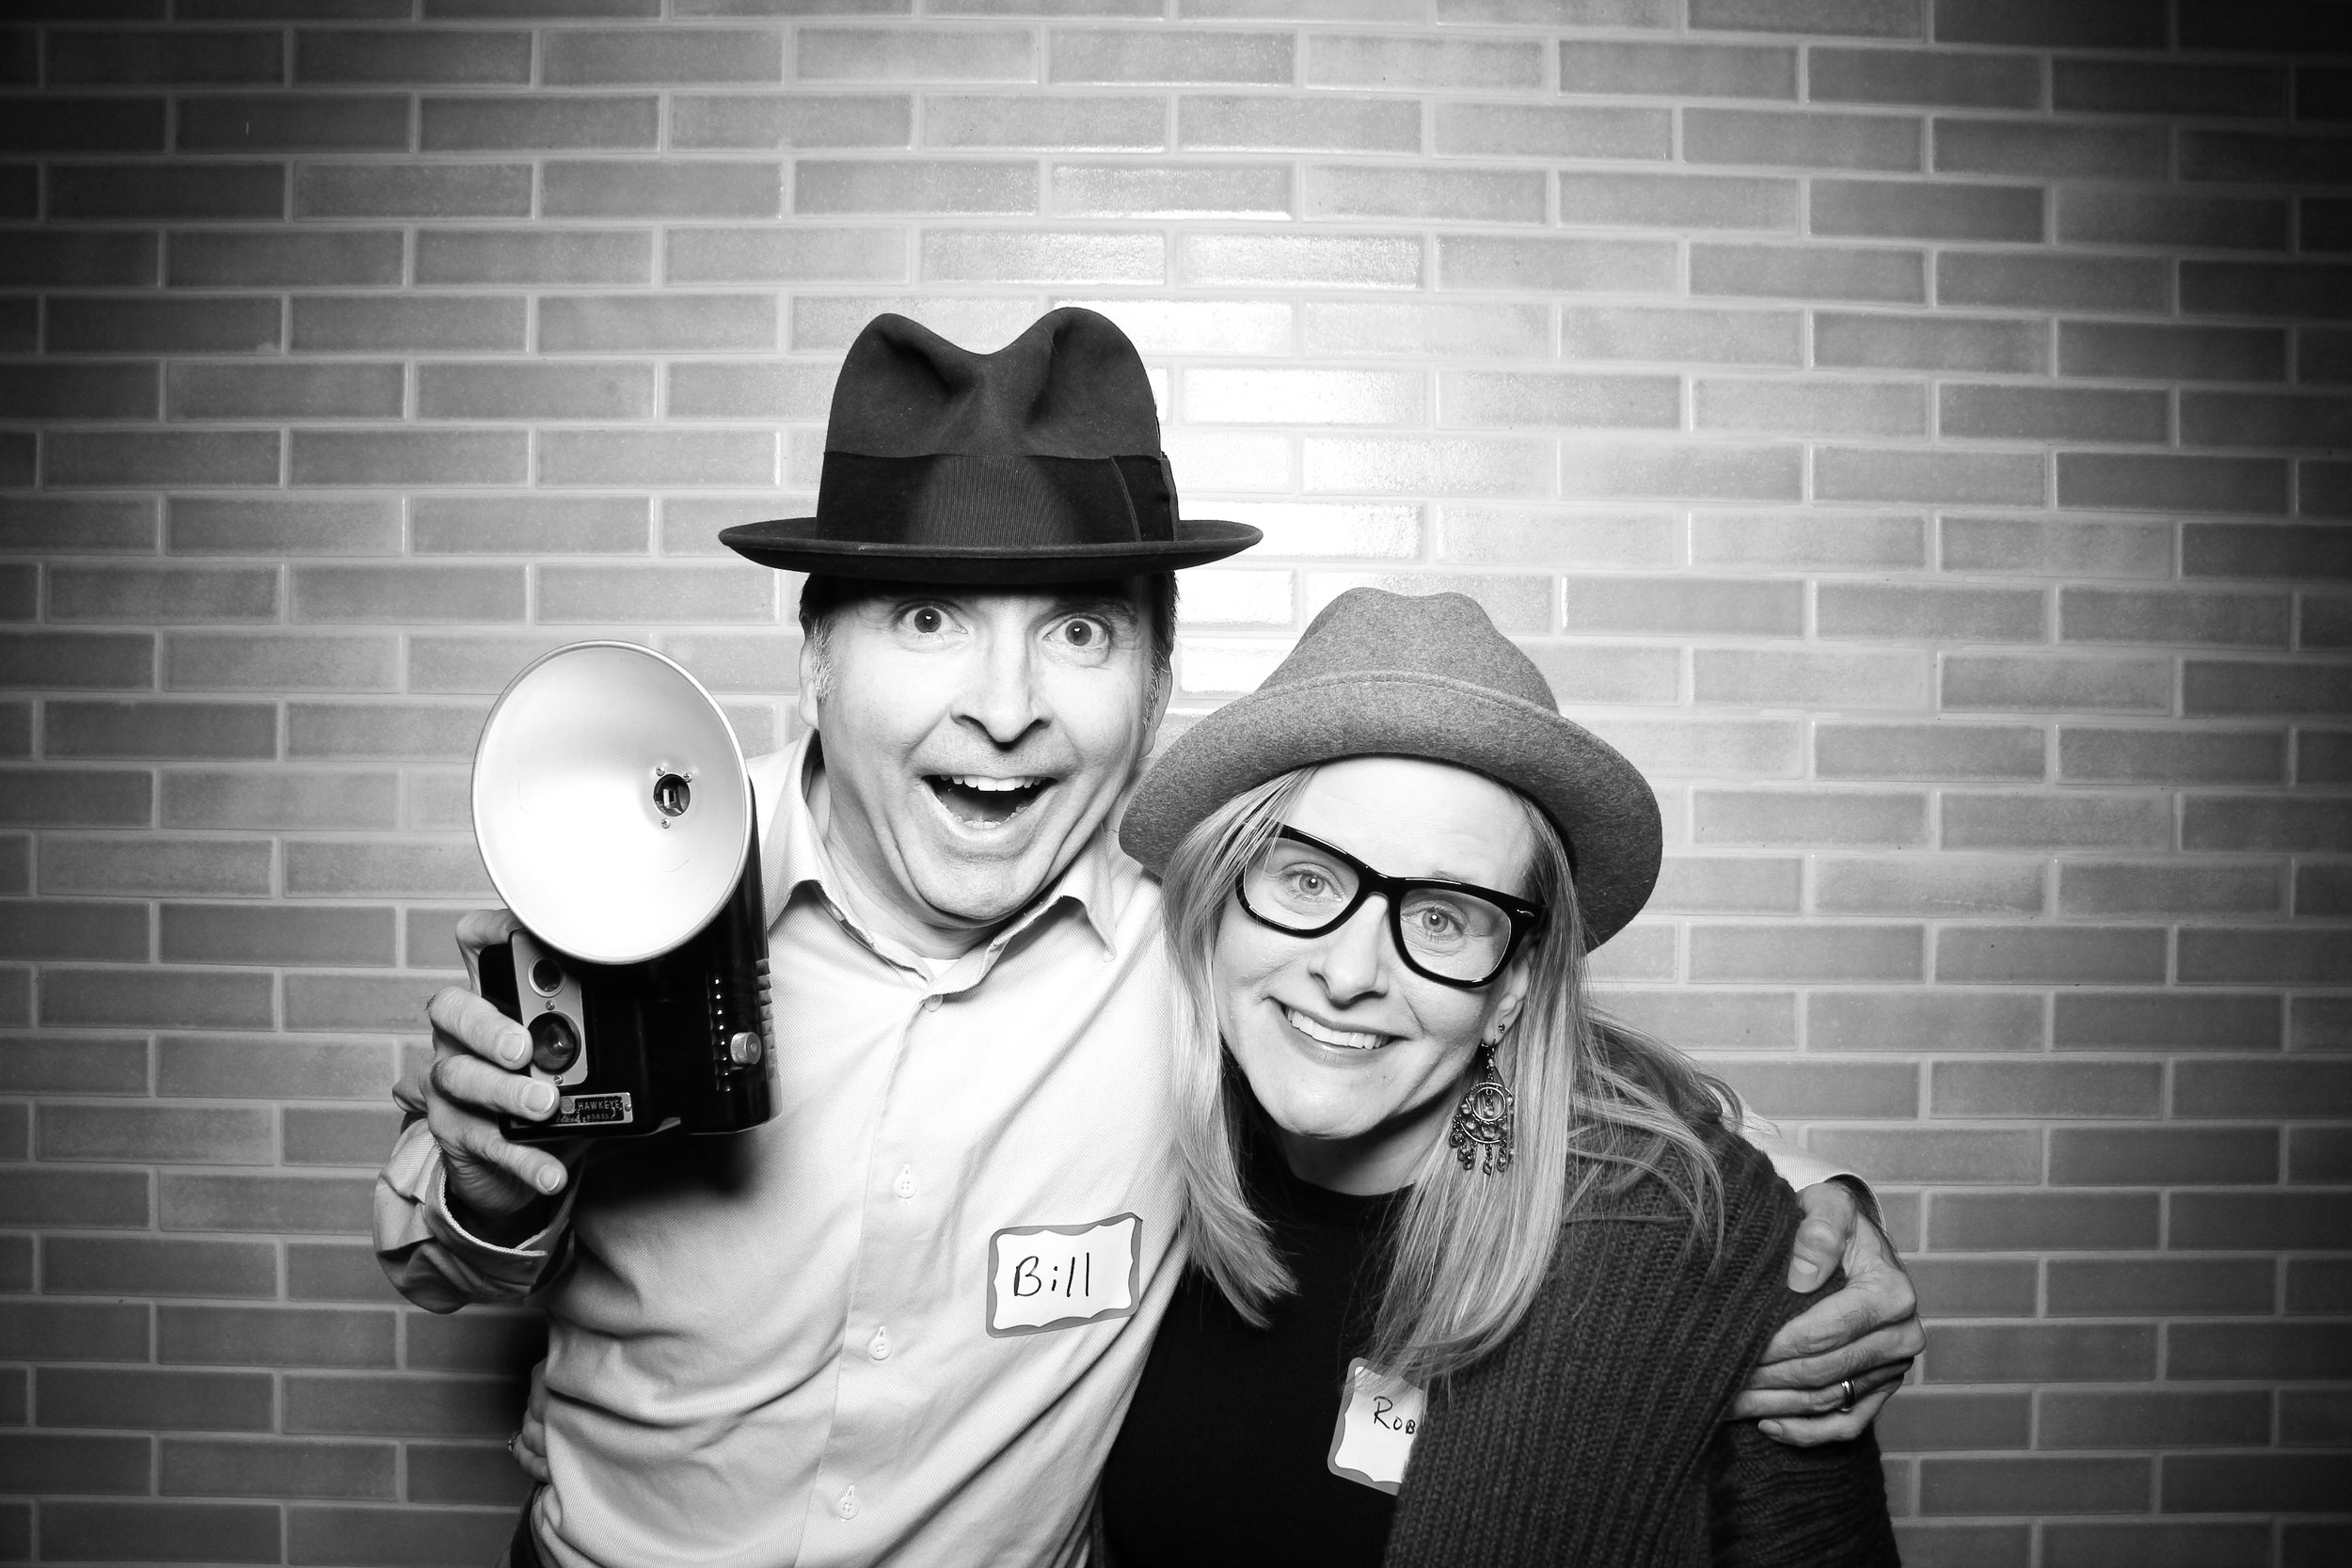 Chicago_Vintage_Photobooth_Holiday_Party_Boleo_02.jpg